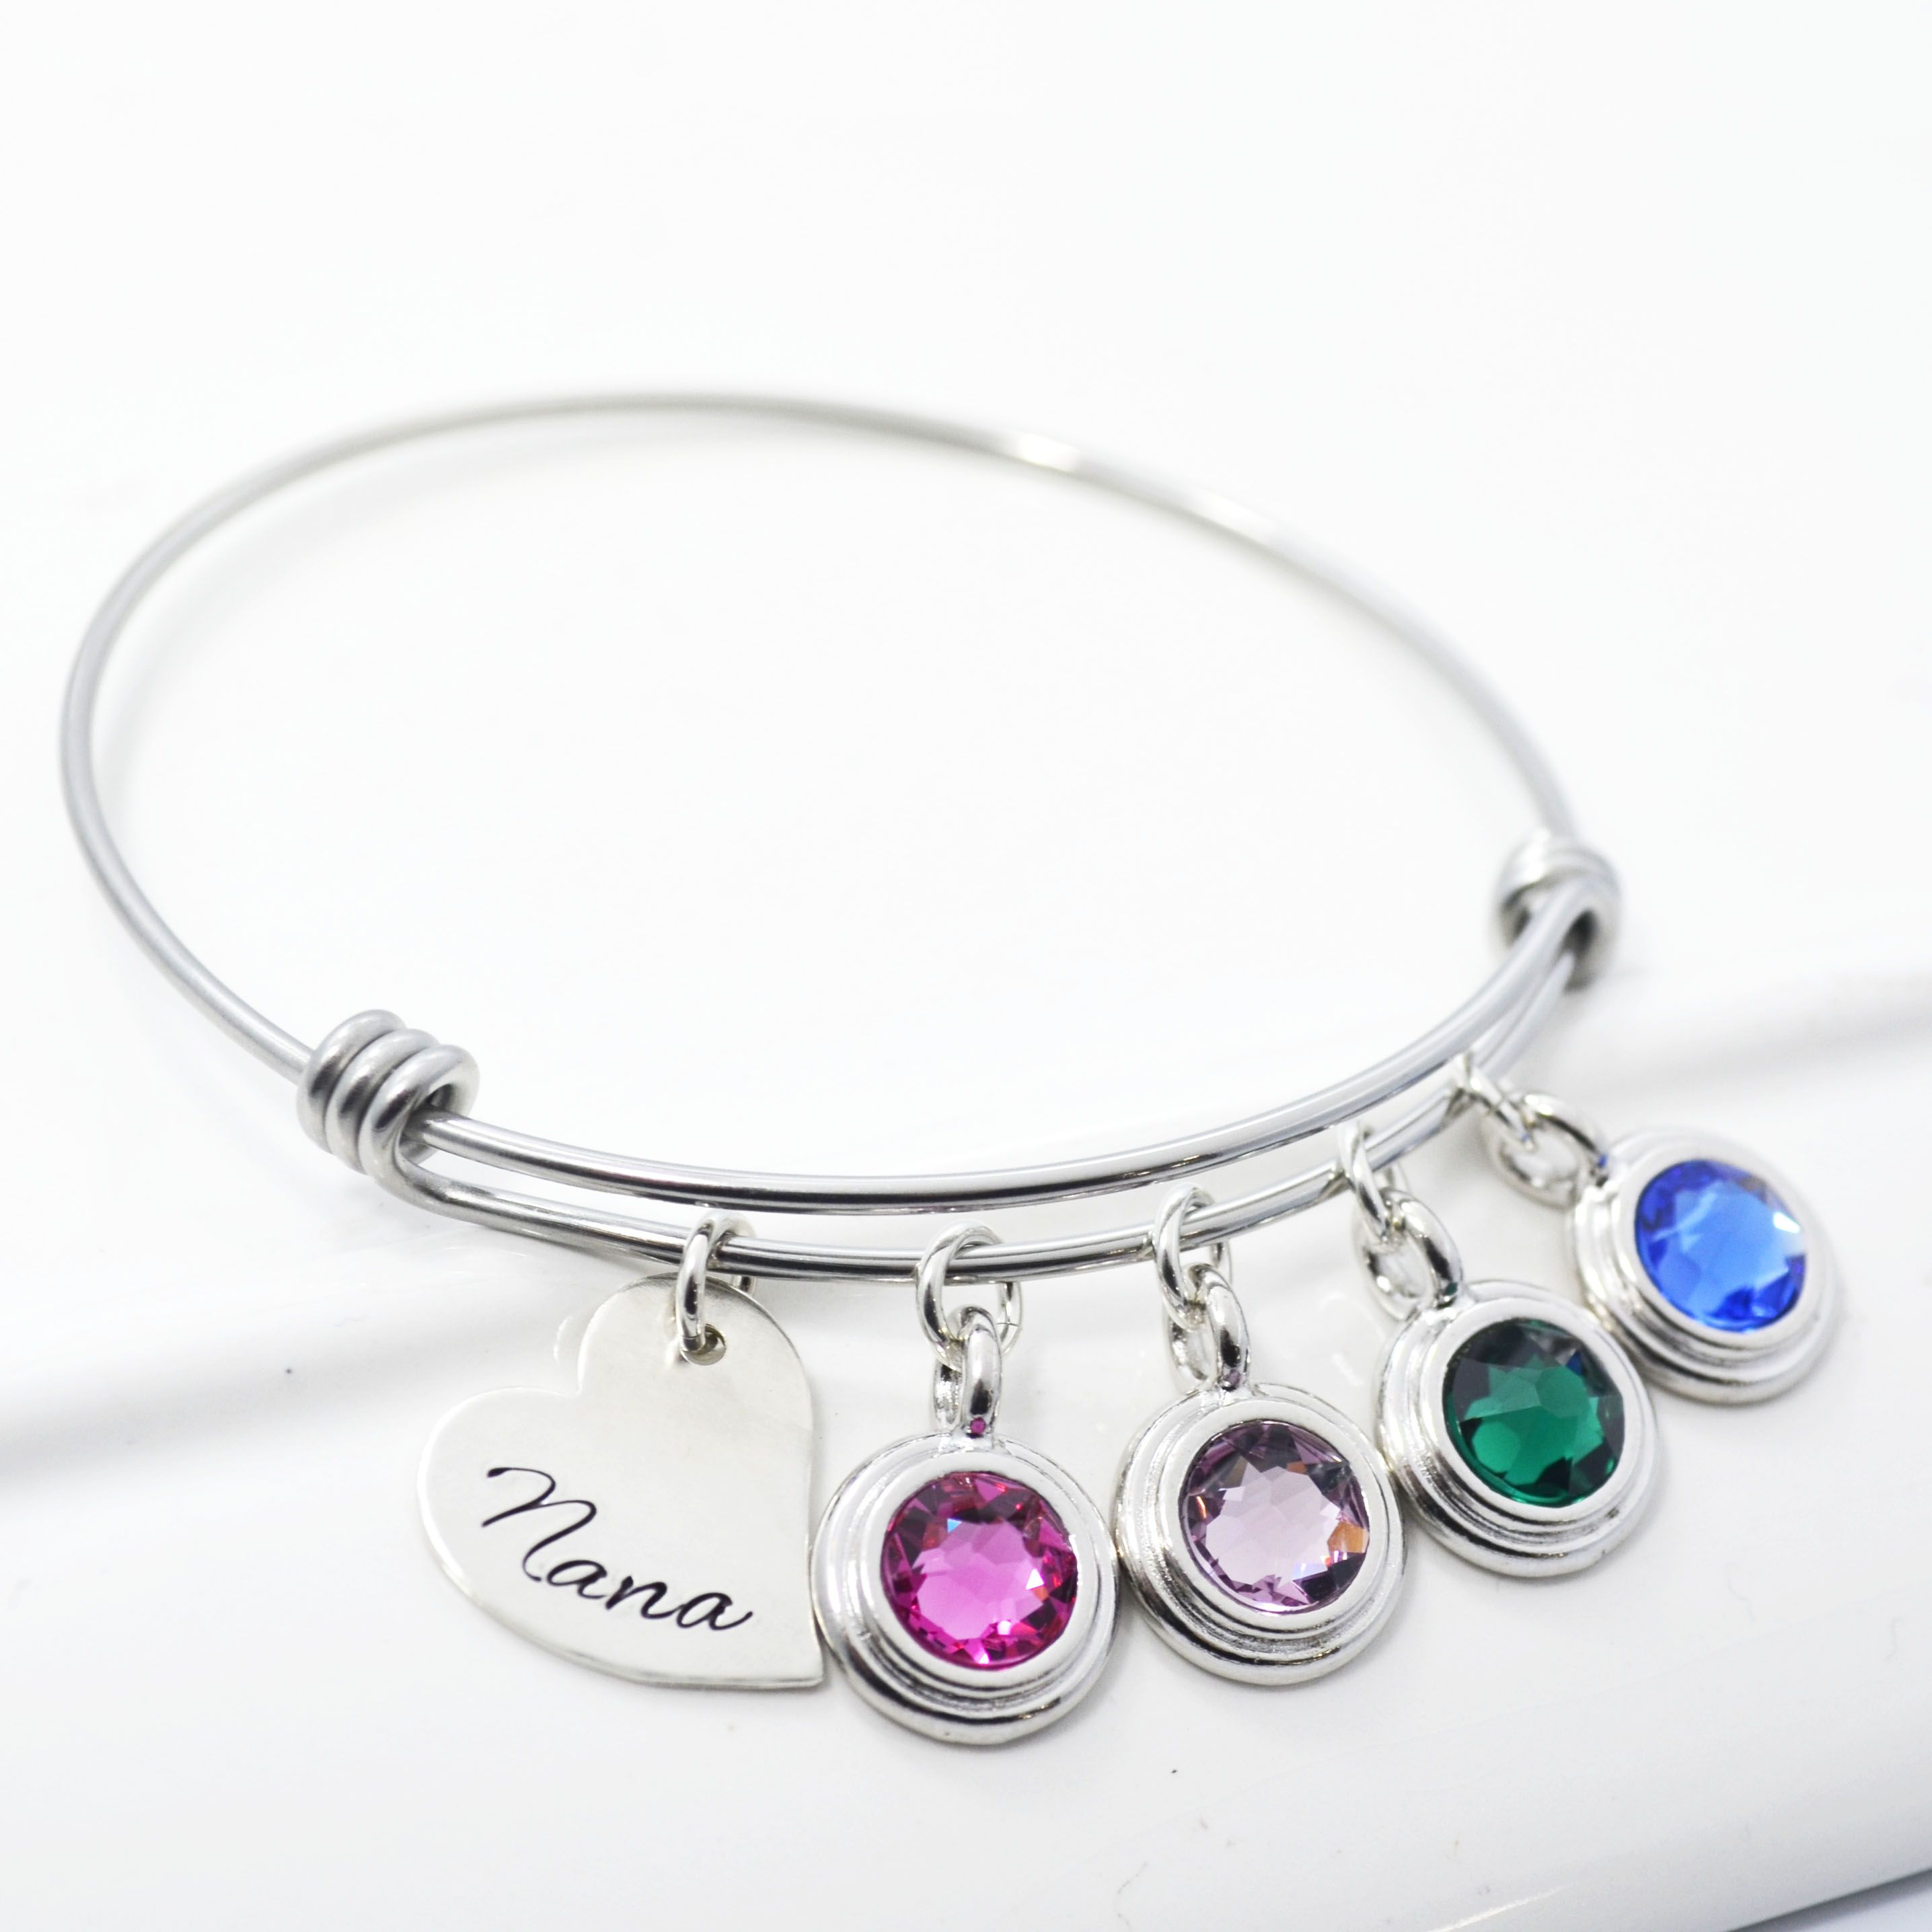 mmrjszl with charm the bracelets perfect bingefashion bracelet make style bangles silver